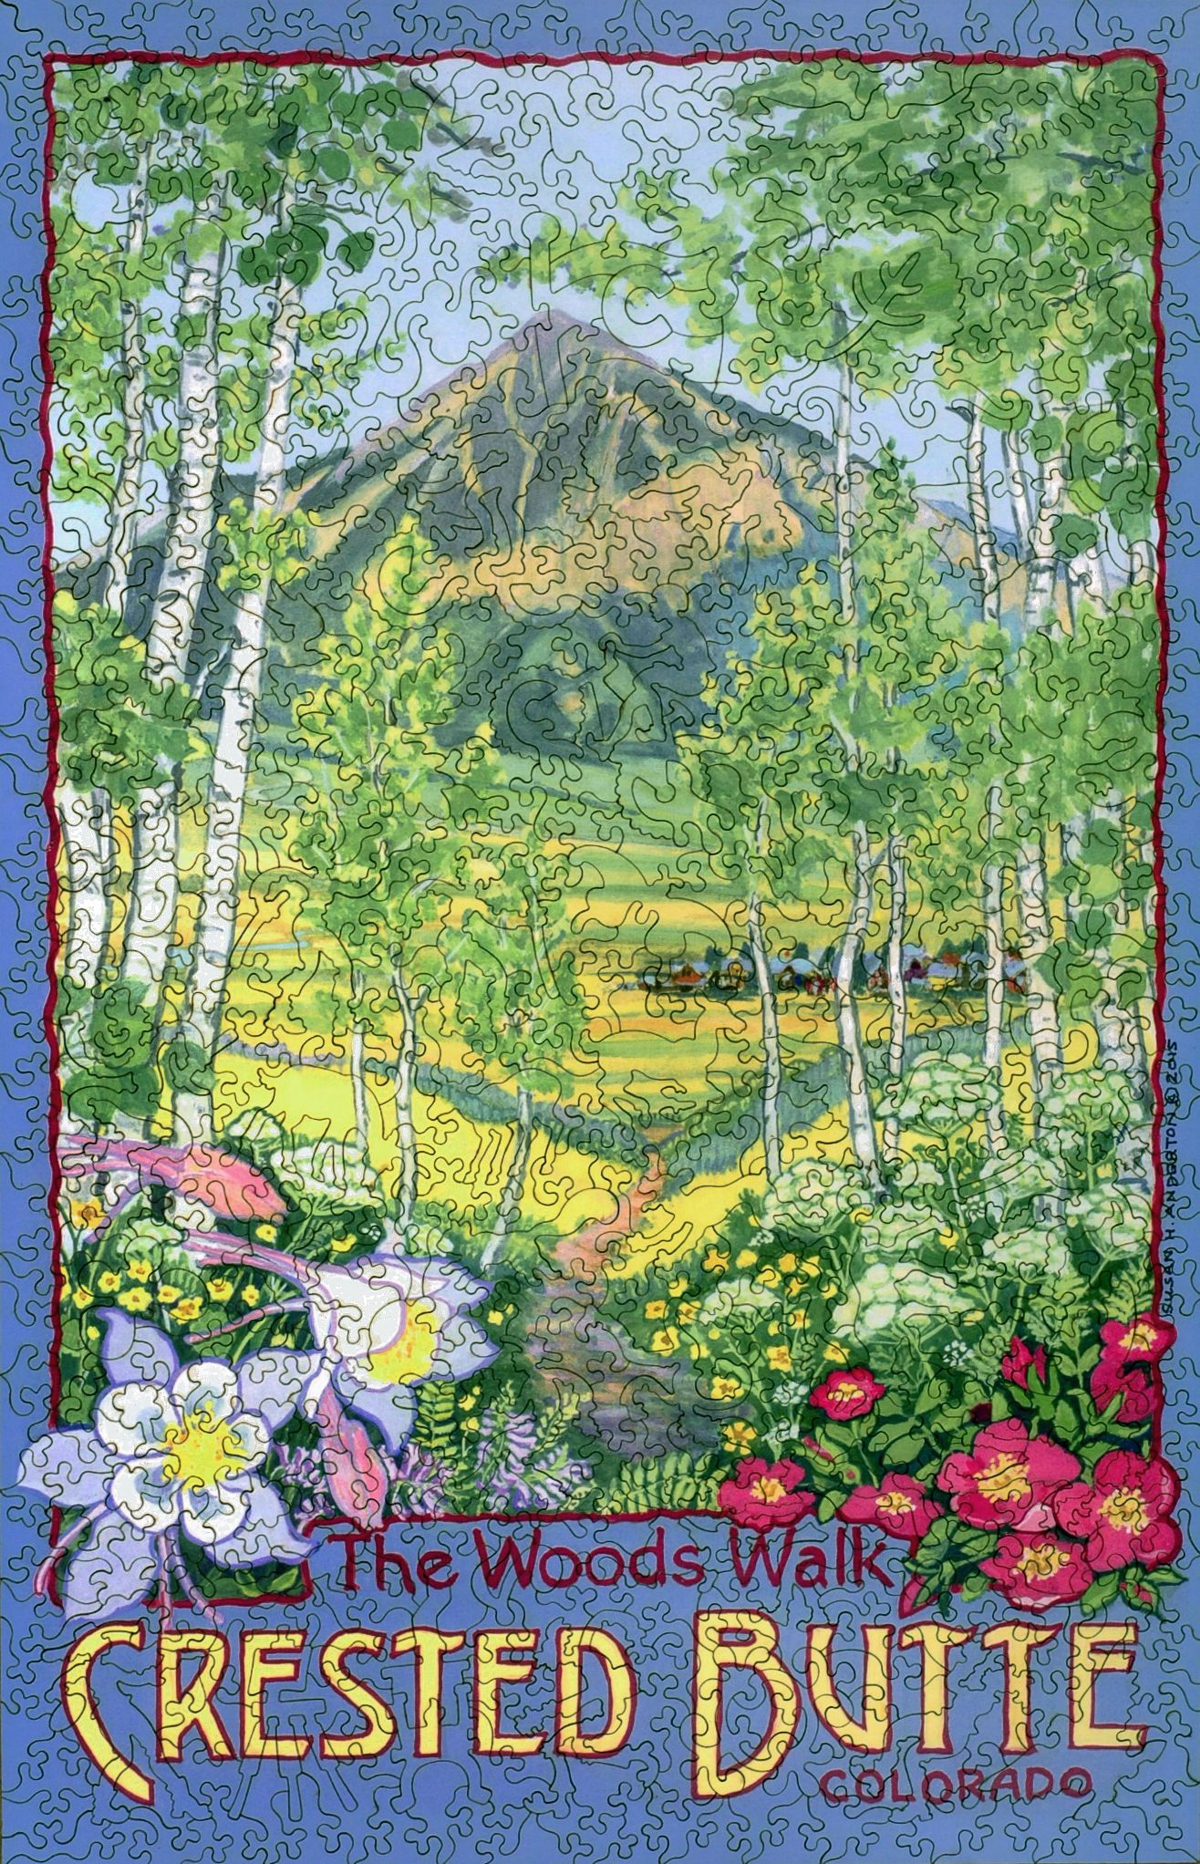 The Woods Wood Be Quiet If No Birds Sang Except The Best: The Woods Walk, Crested Butte, Colorado